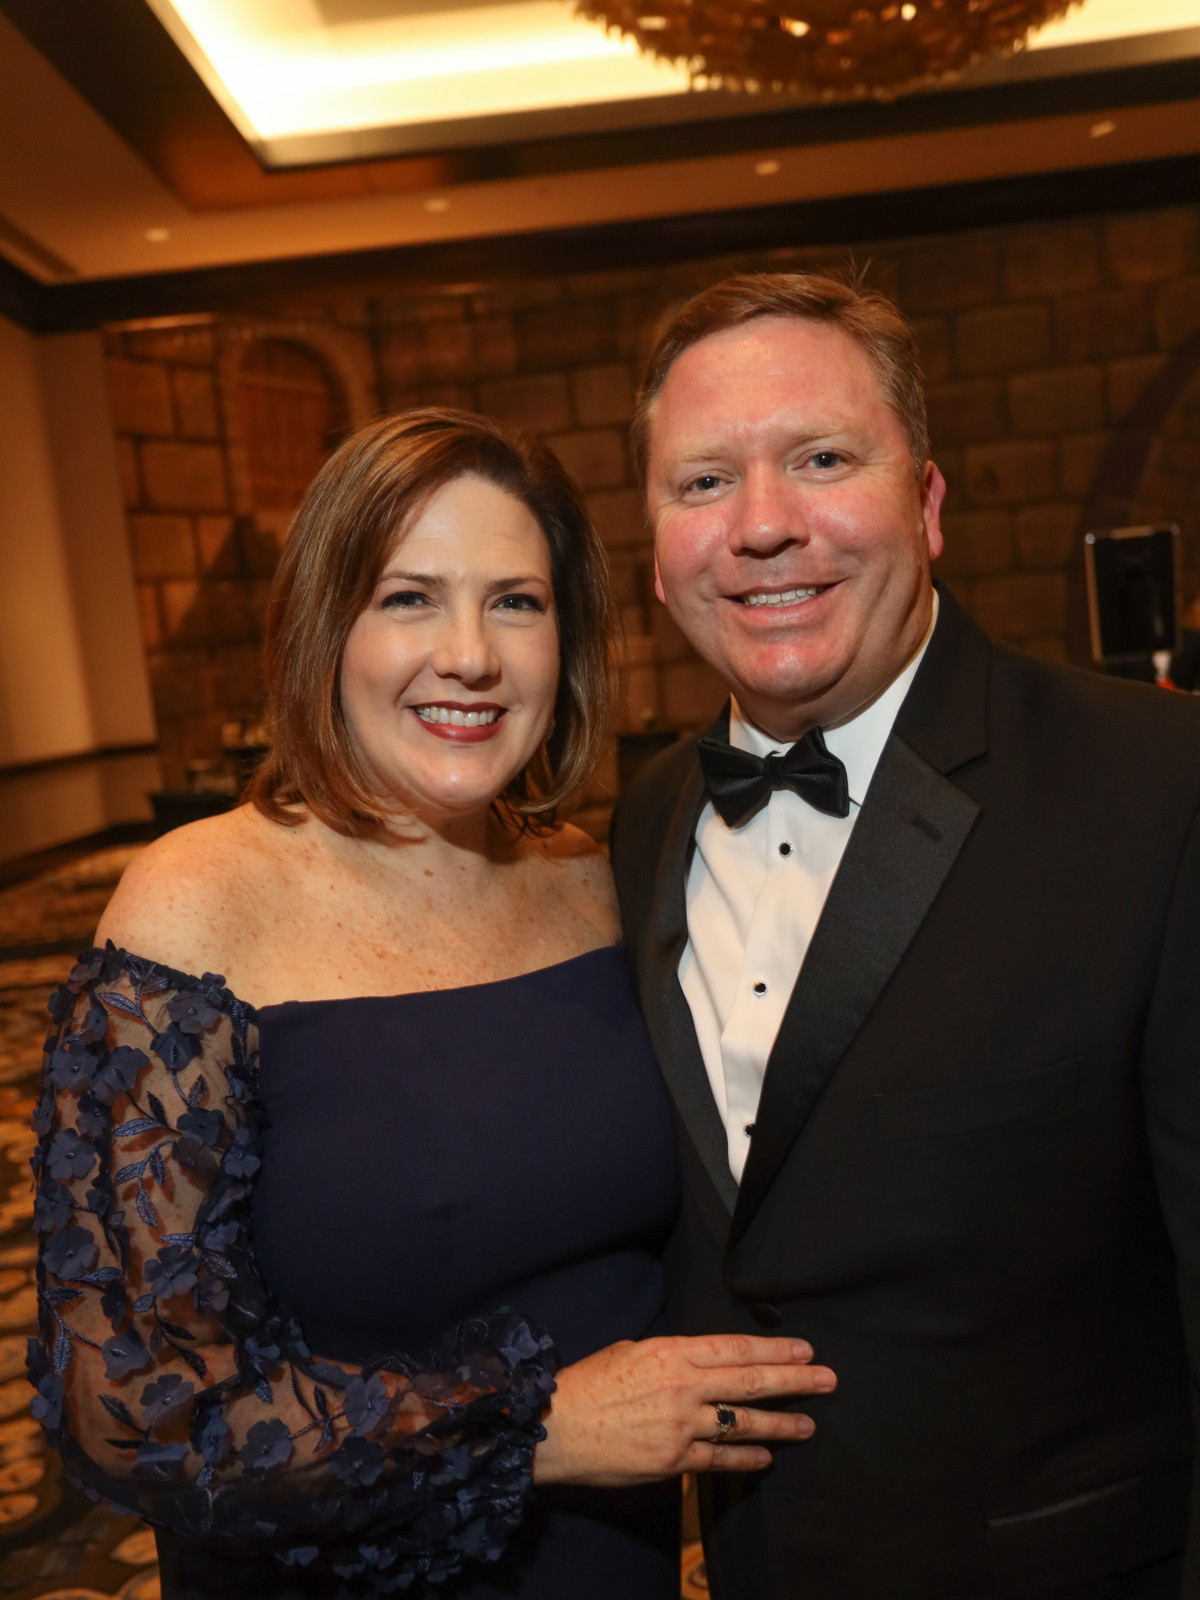 West U Park Lover's Ball 2020 Michelle and Doug Huth